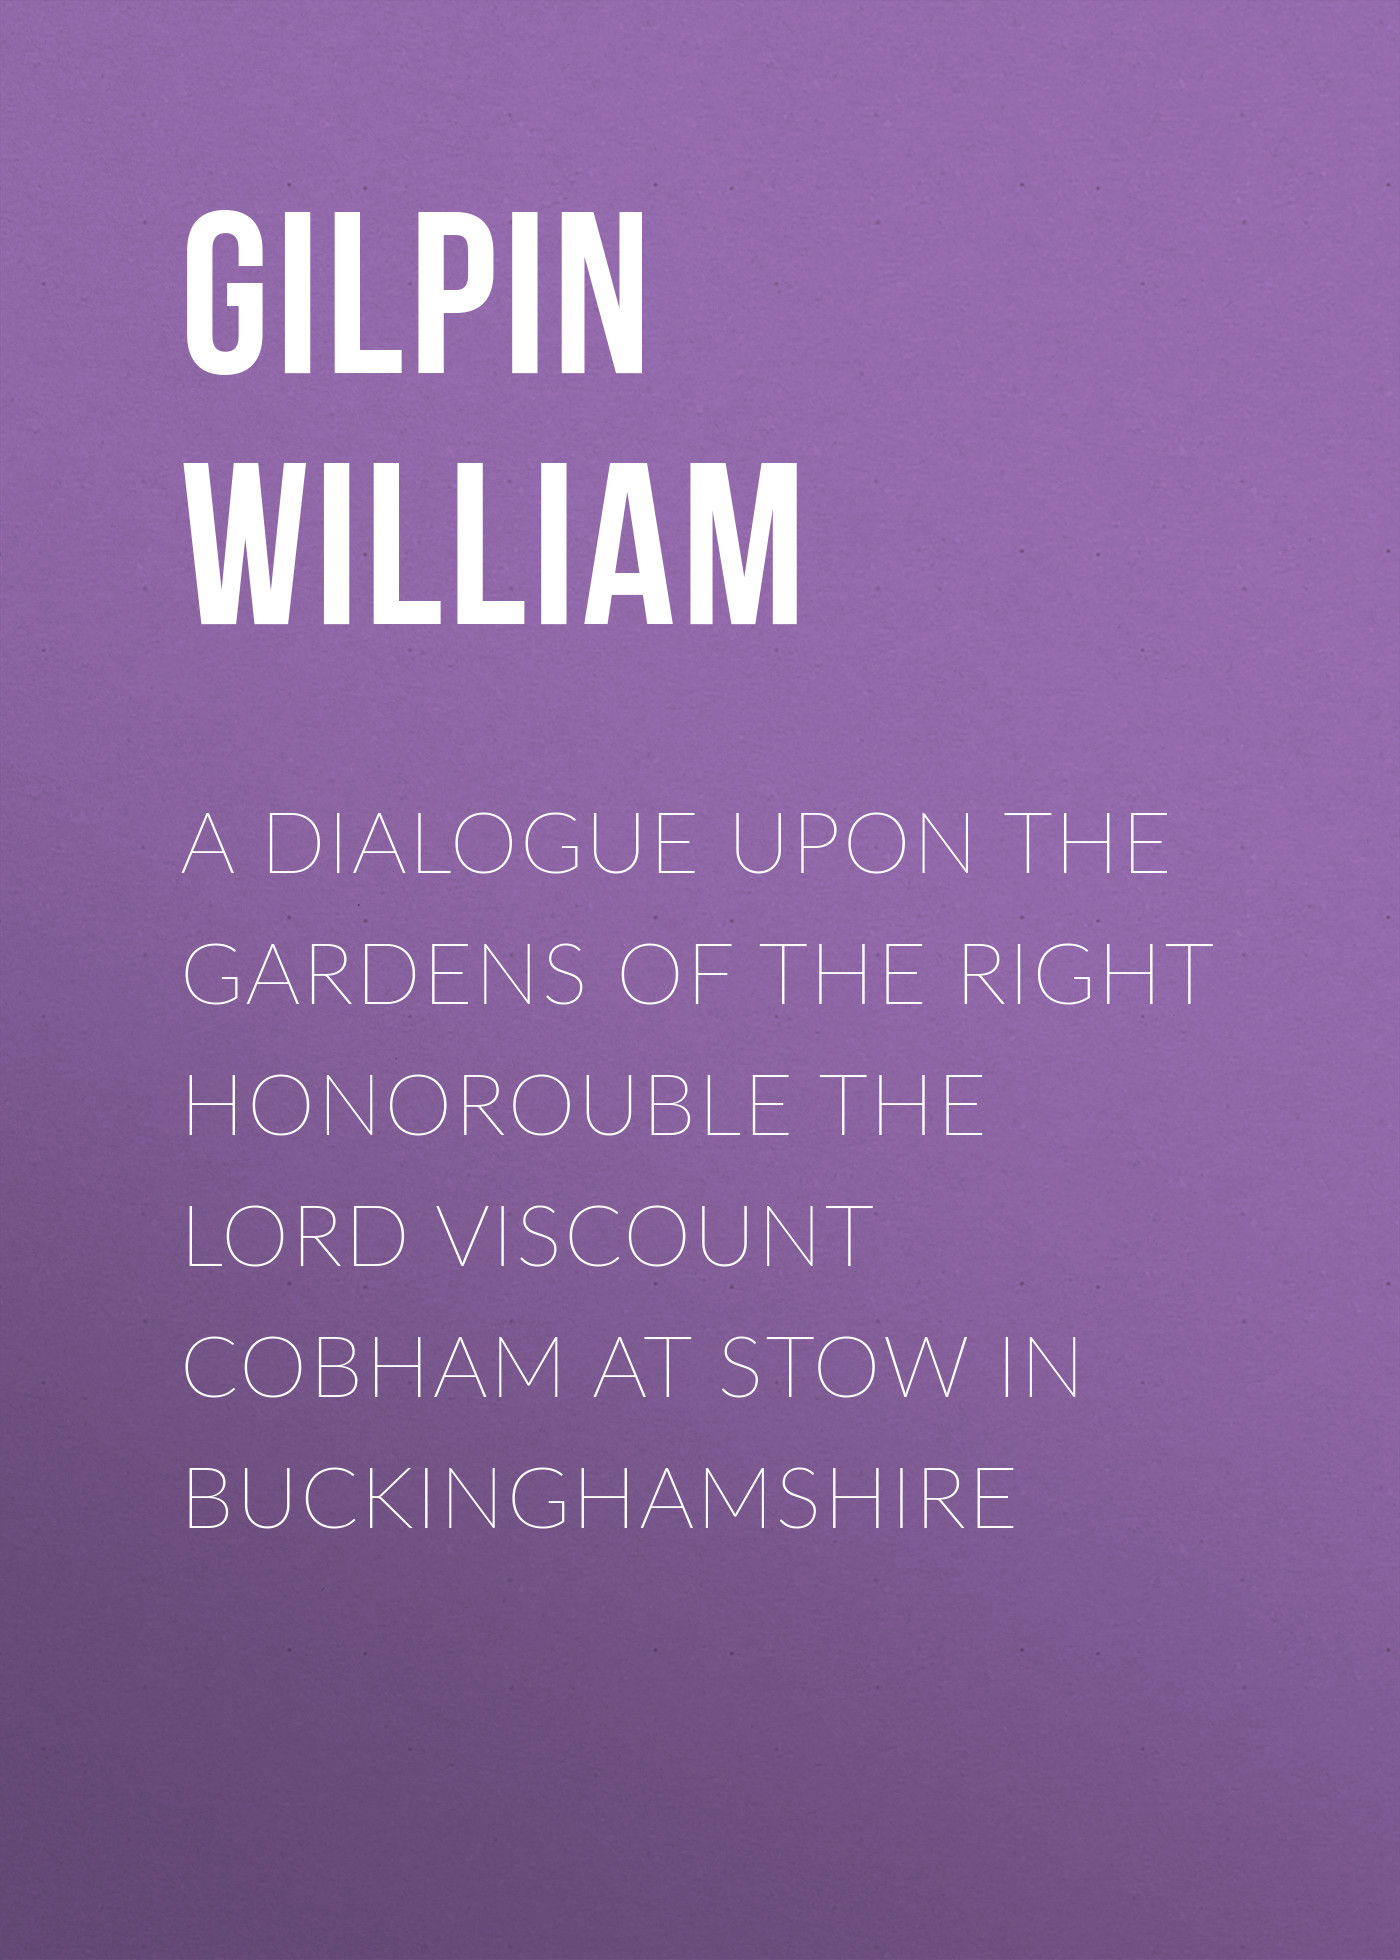 Gilpin William A Dialogue upon the Gardens of the Right Honorouble the Lord Viscount Cobham at Stow in Buckinghamshire все цены